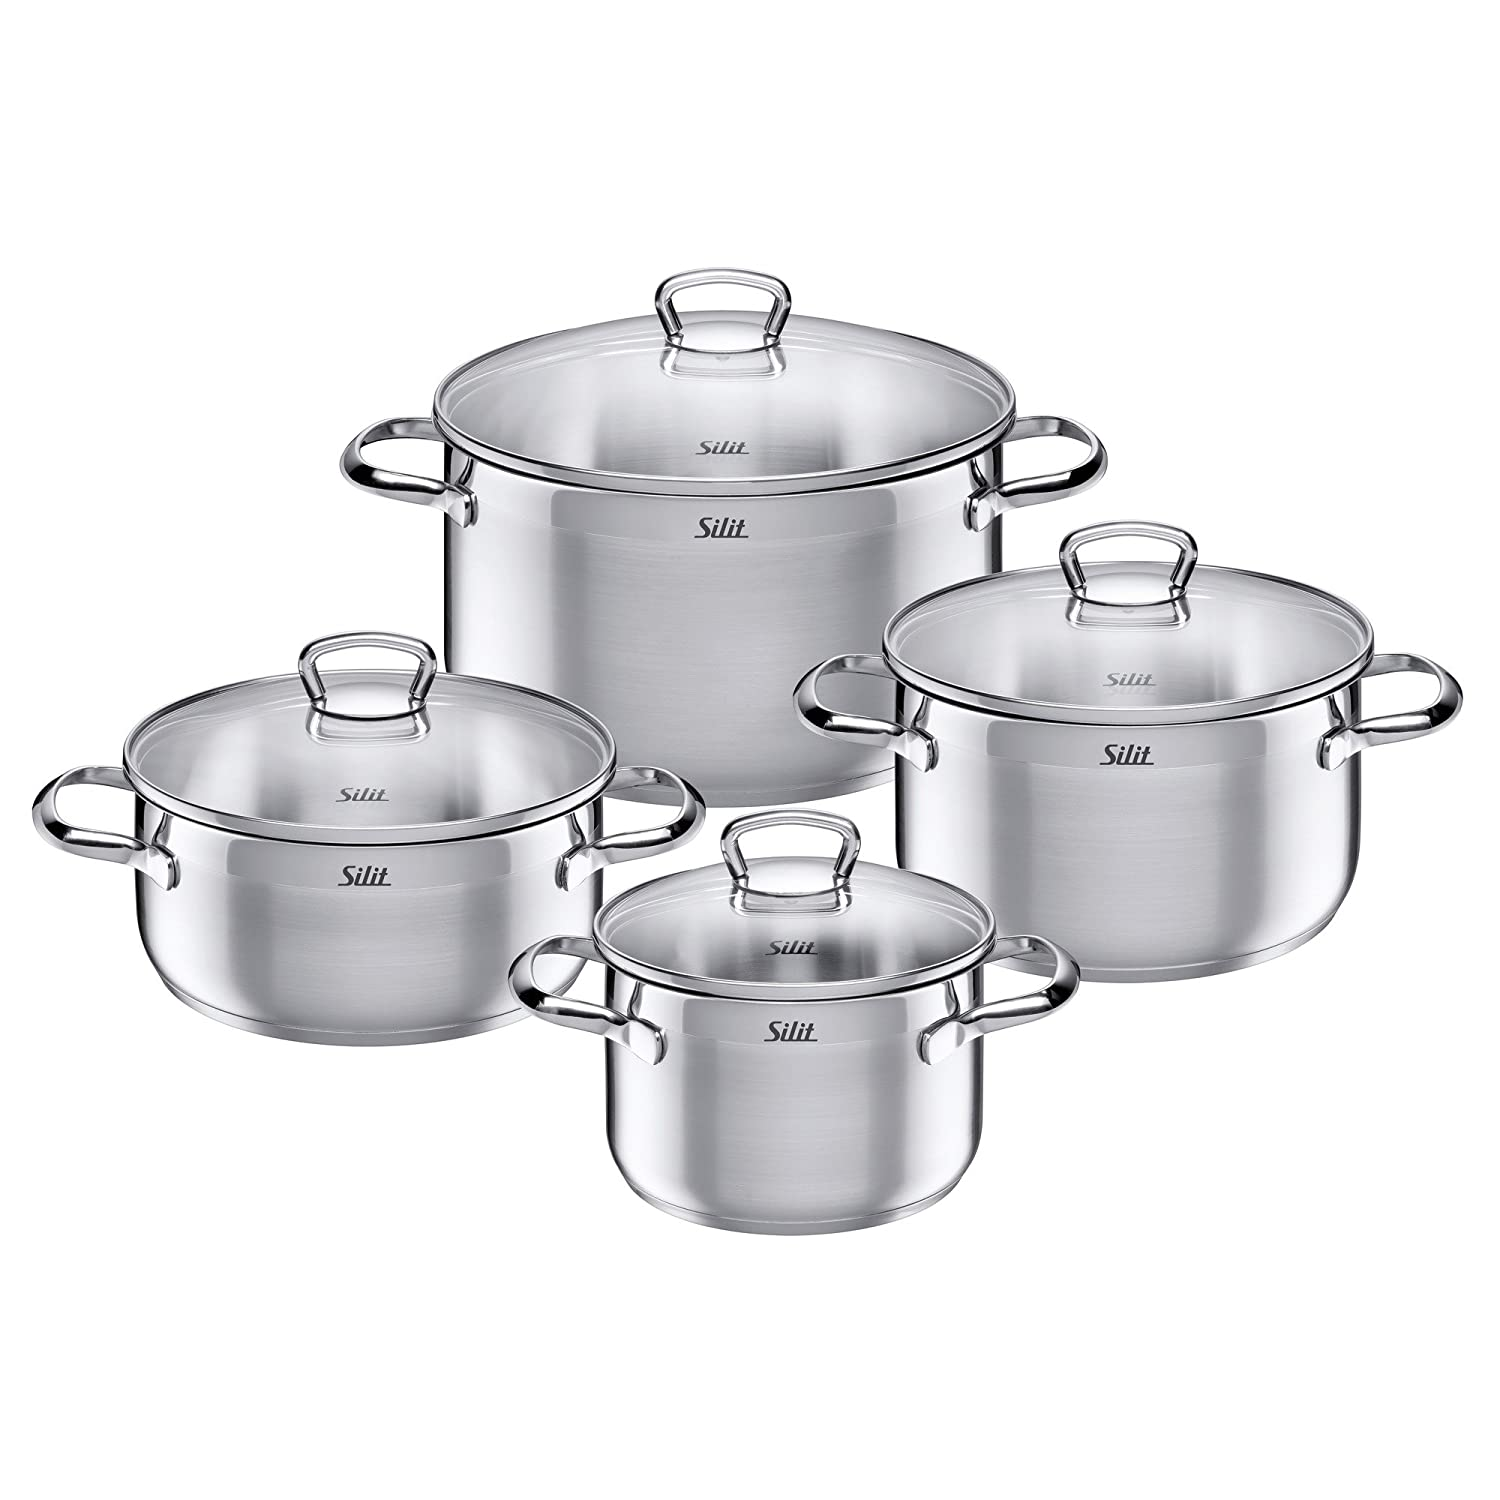 Silit Pot Set 4-Piece Toskana Pouring Rim Glass Lid Stainless Steel Suitable for Induction Hobs Dishwasher-Safe 2109256717